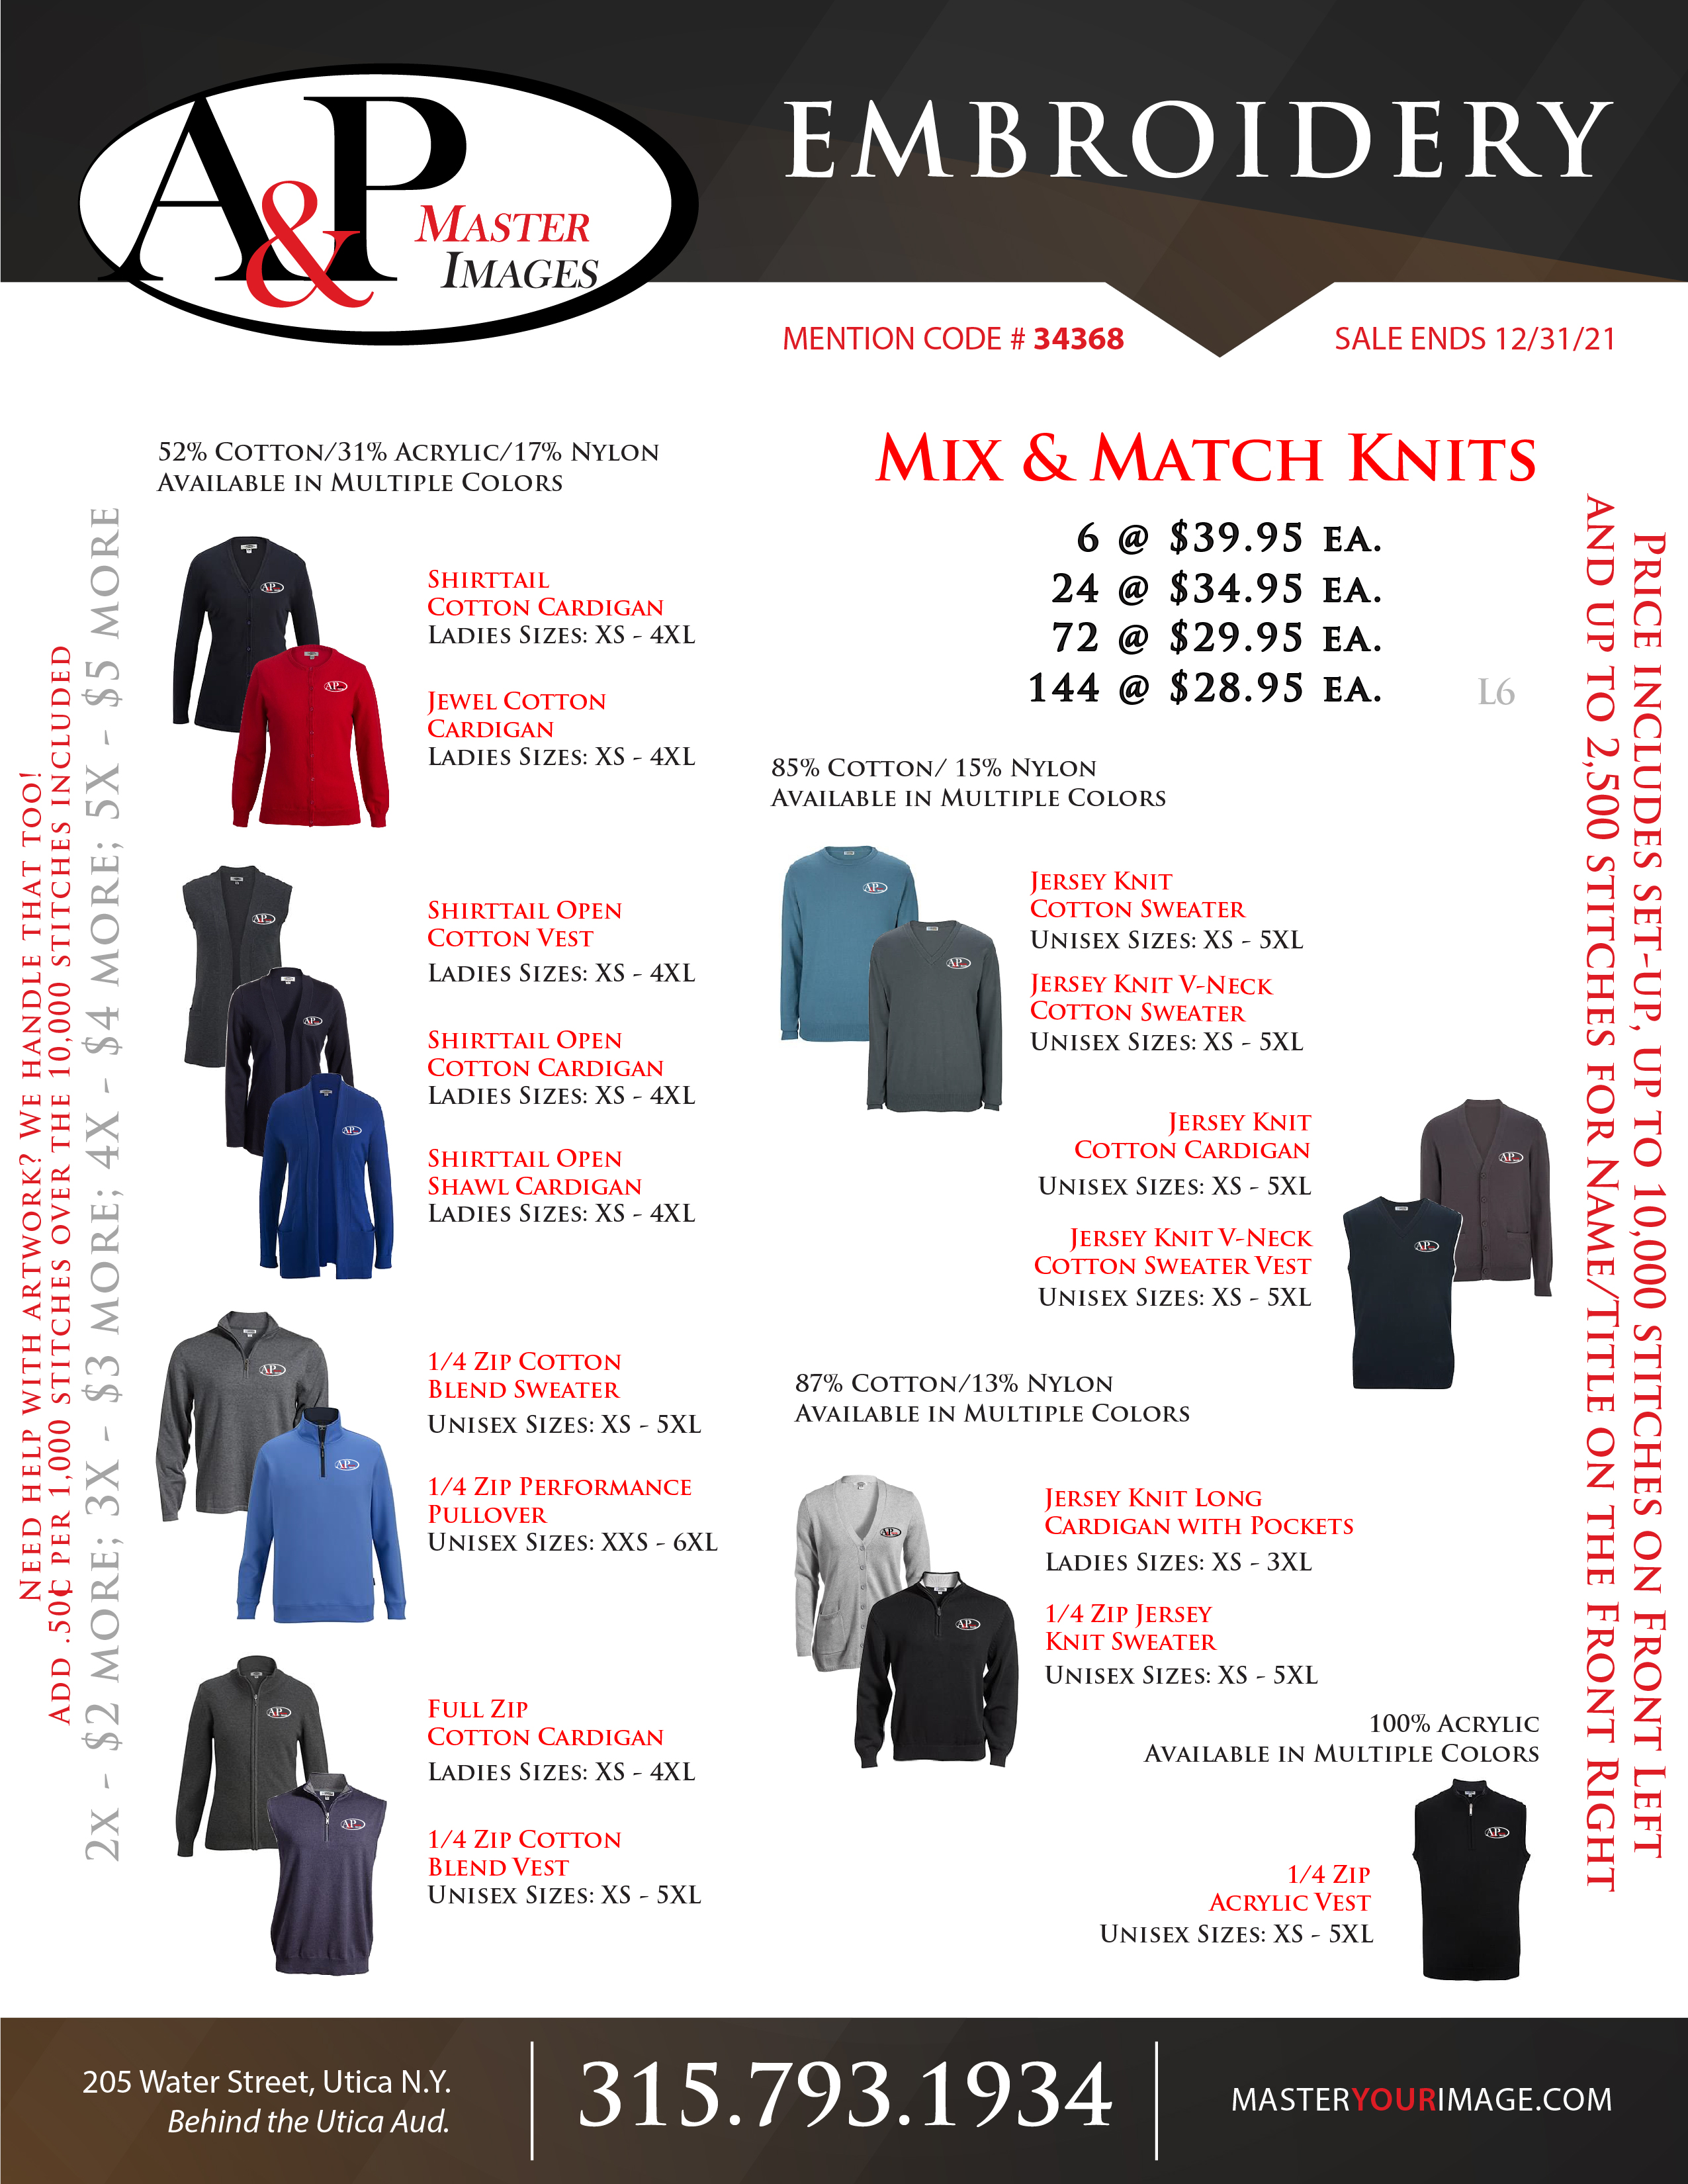 Sales Flyers - Embroidery - 14